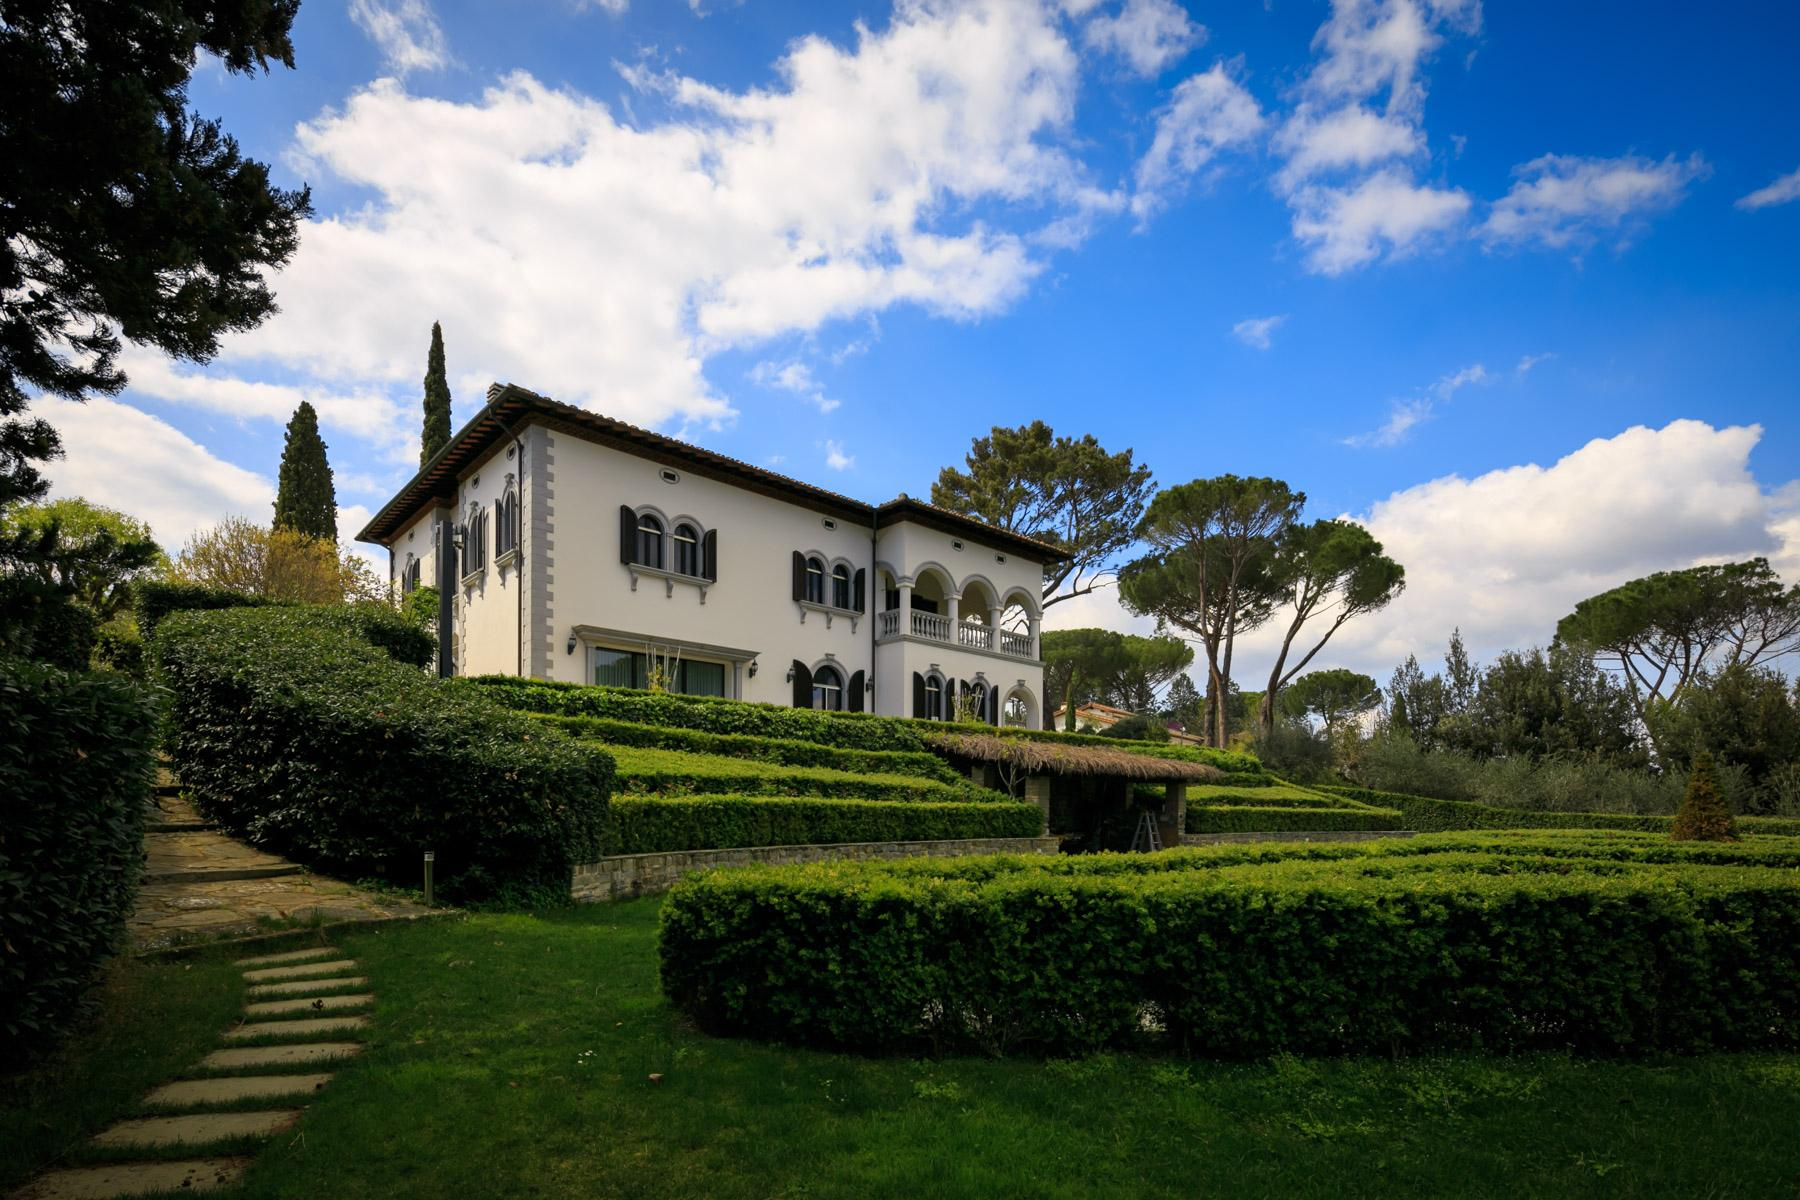 Splendid villa with pool on the Pian dei Giullari hill in Florence - 5